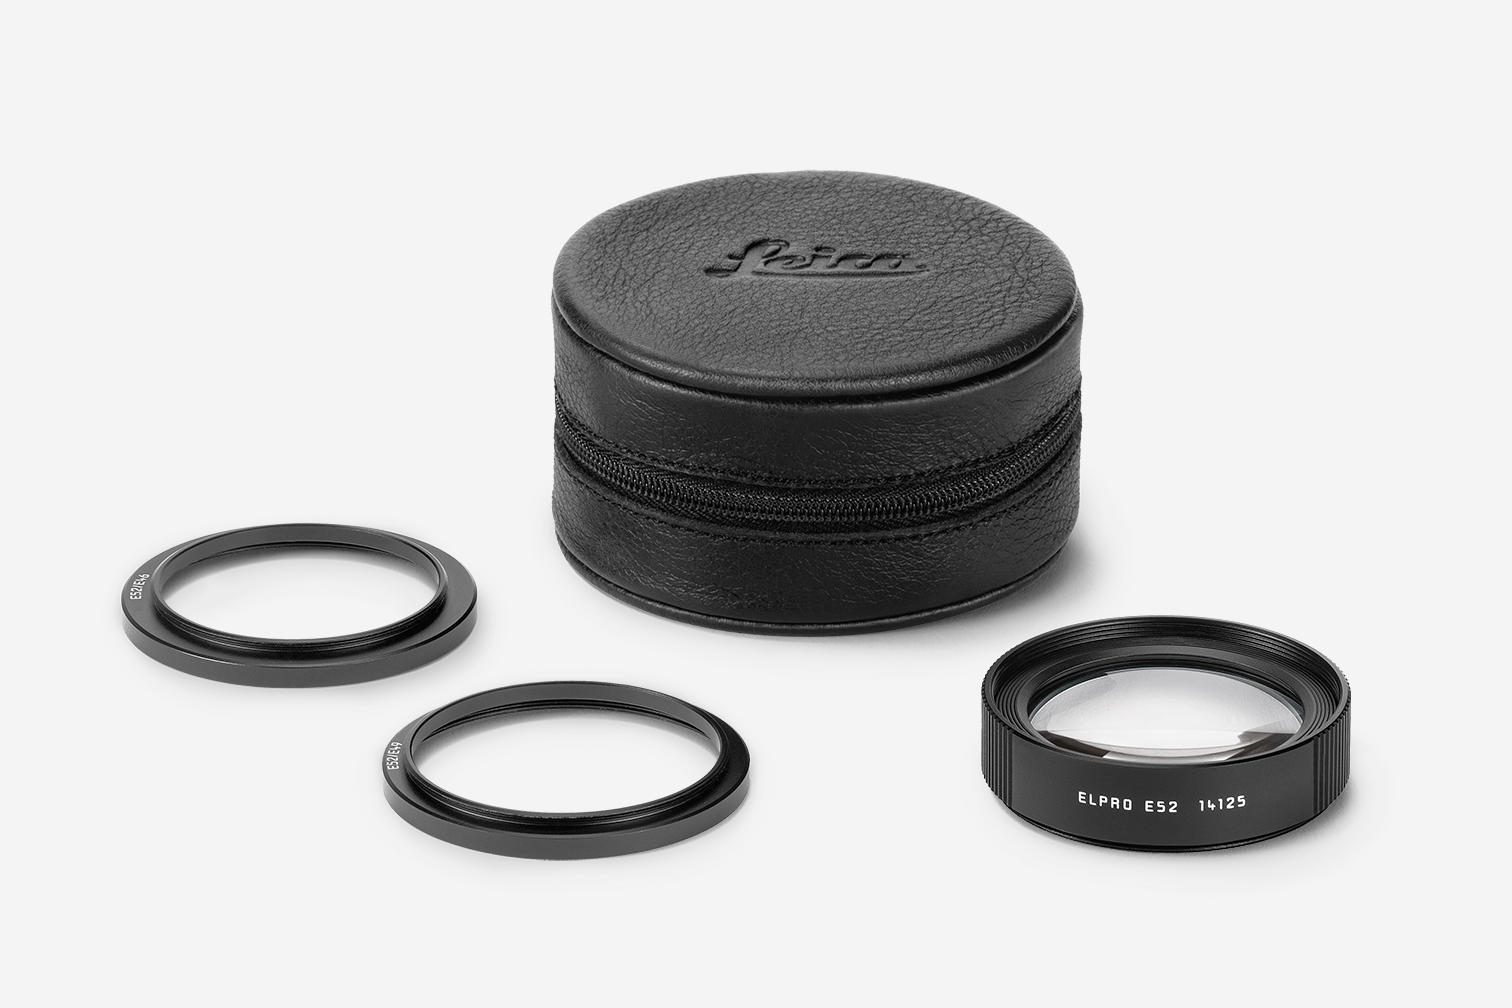 Leica Elpro 52 for macrophotography